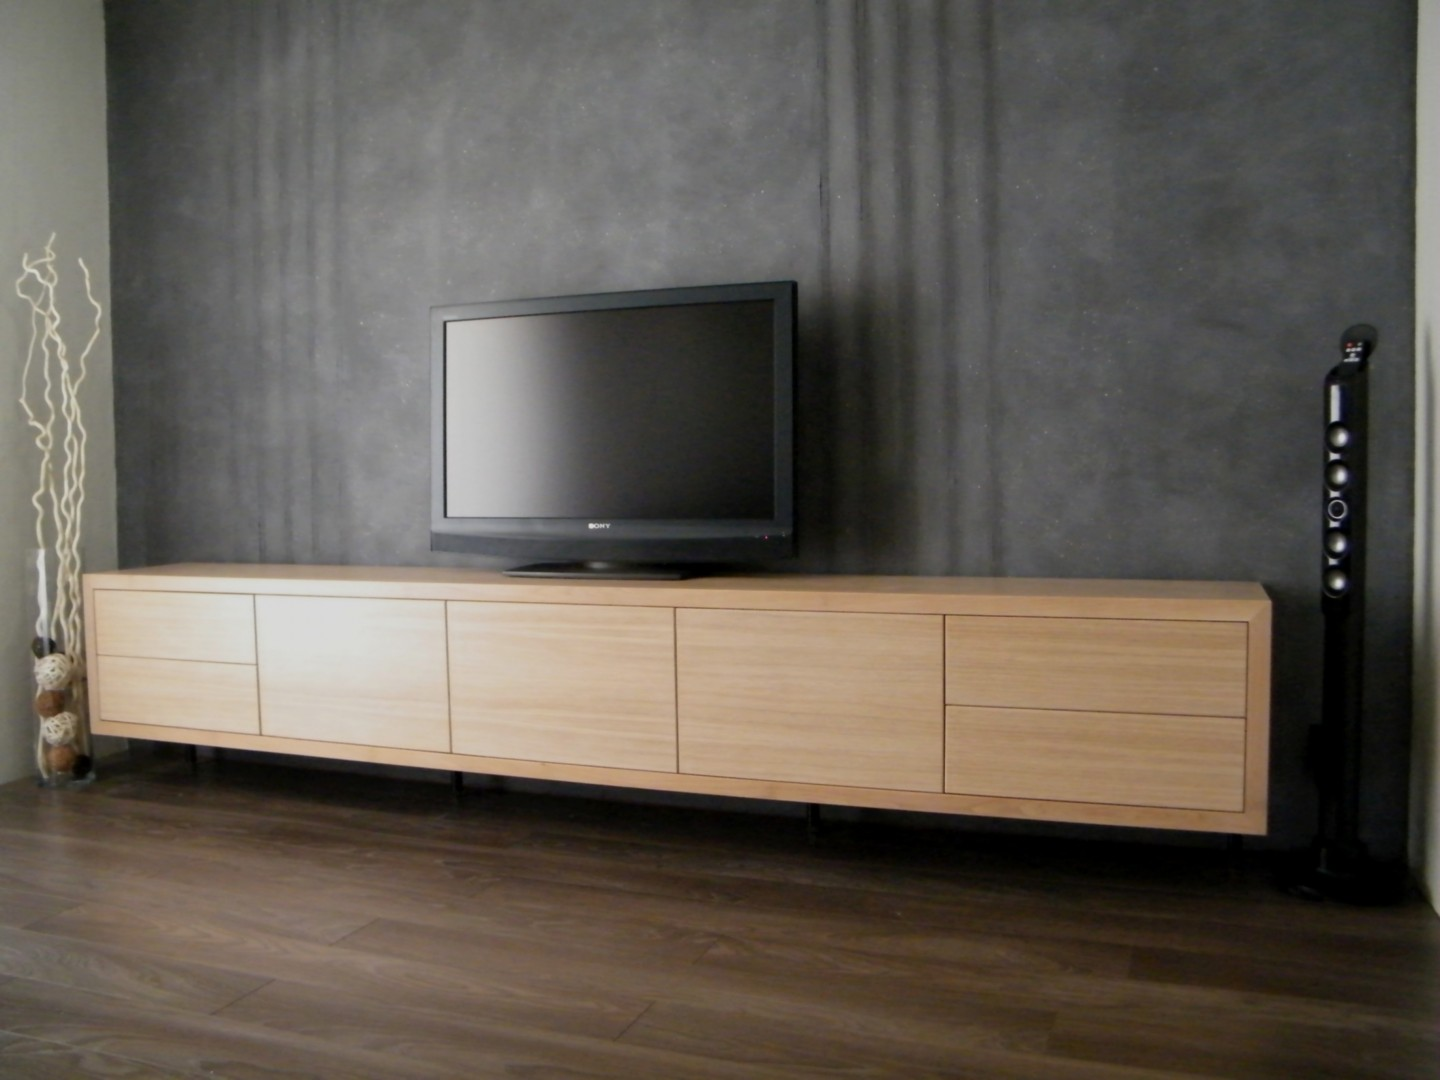 Meuble Tv Bas Long - Meuble Tv Bas Long En Bois De Palissandre Pour Cran Of Meuble Bas [mjhdah]https://www.novomeuble.com/2234-thickbox_default/meuble-tv-bas-long-blanc-laque.jpg